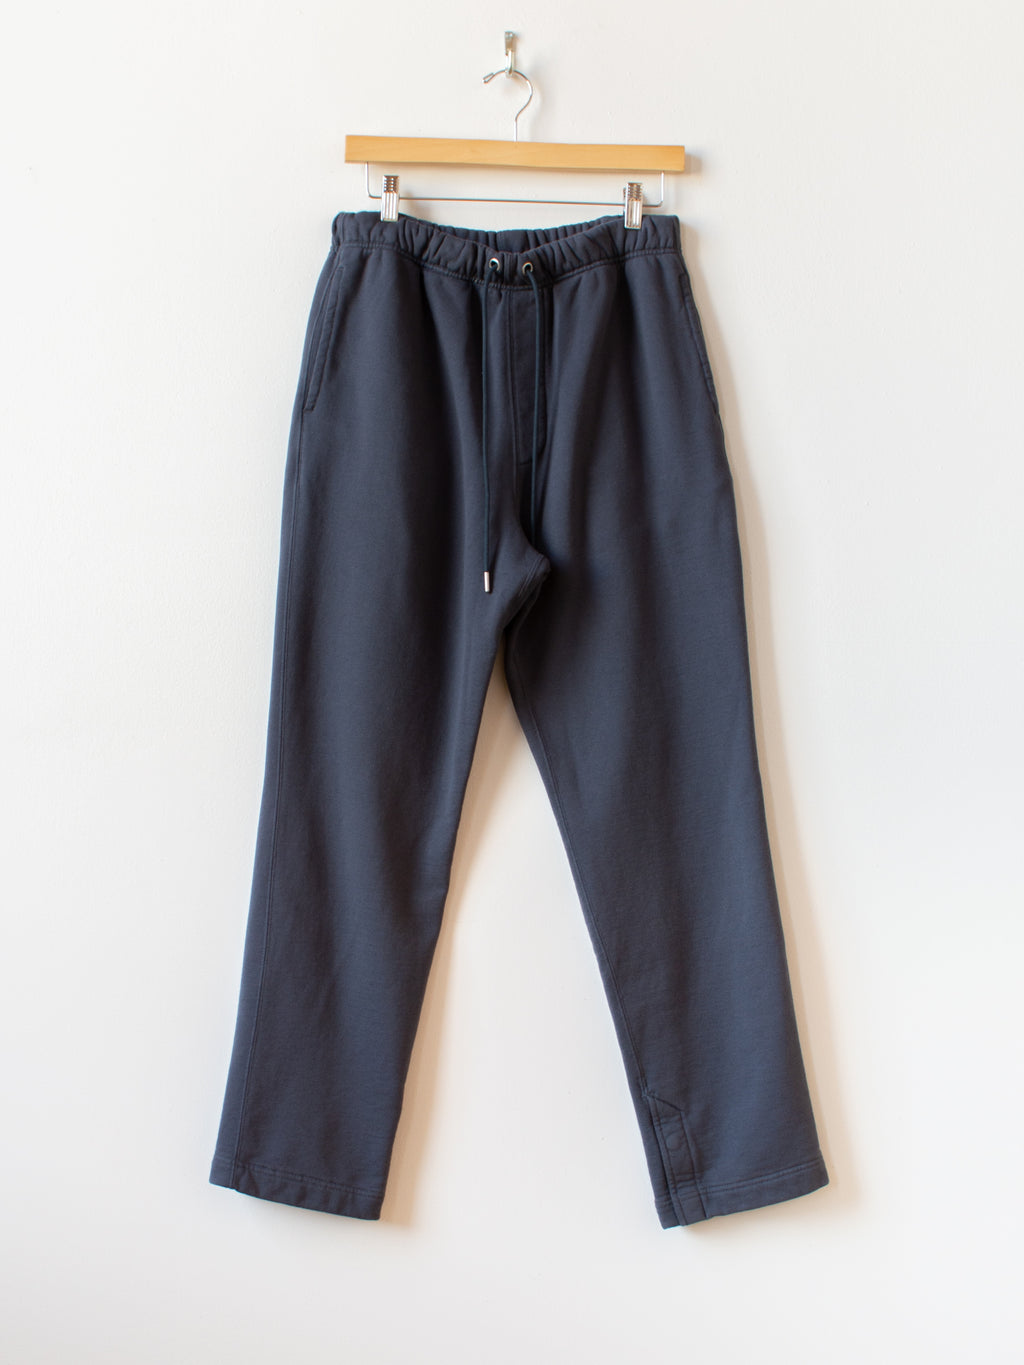 Cotton French Terry Sweatpants - Charcoal